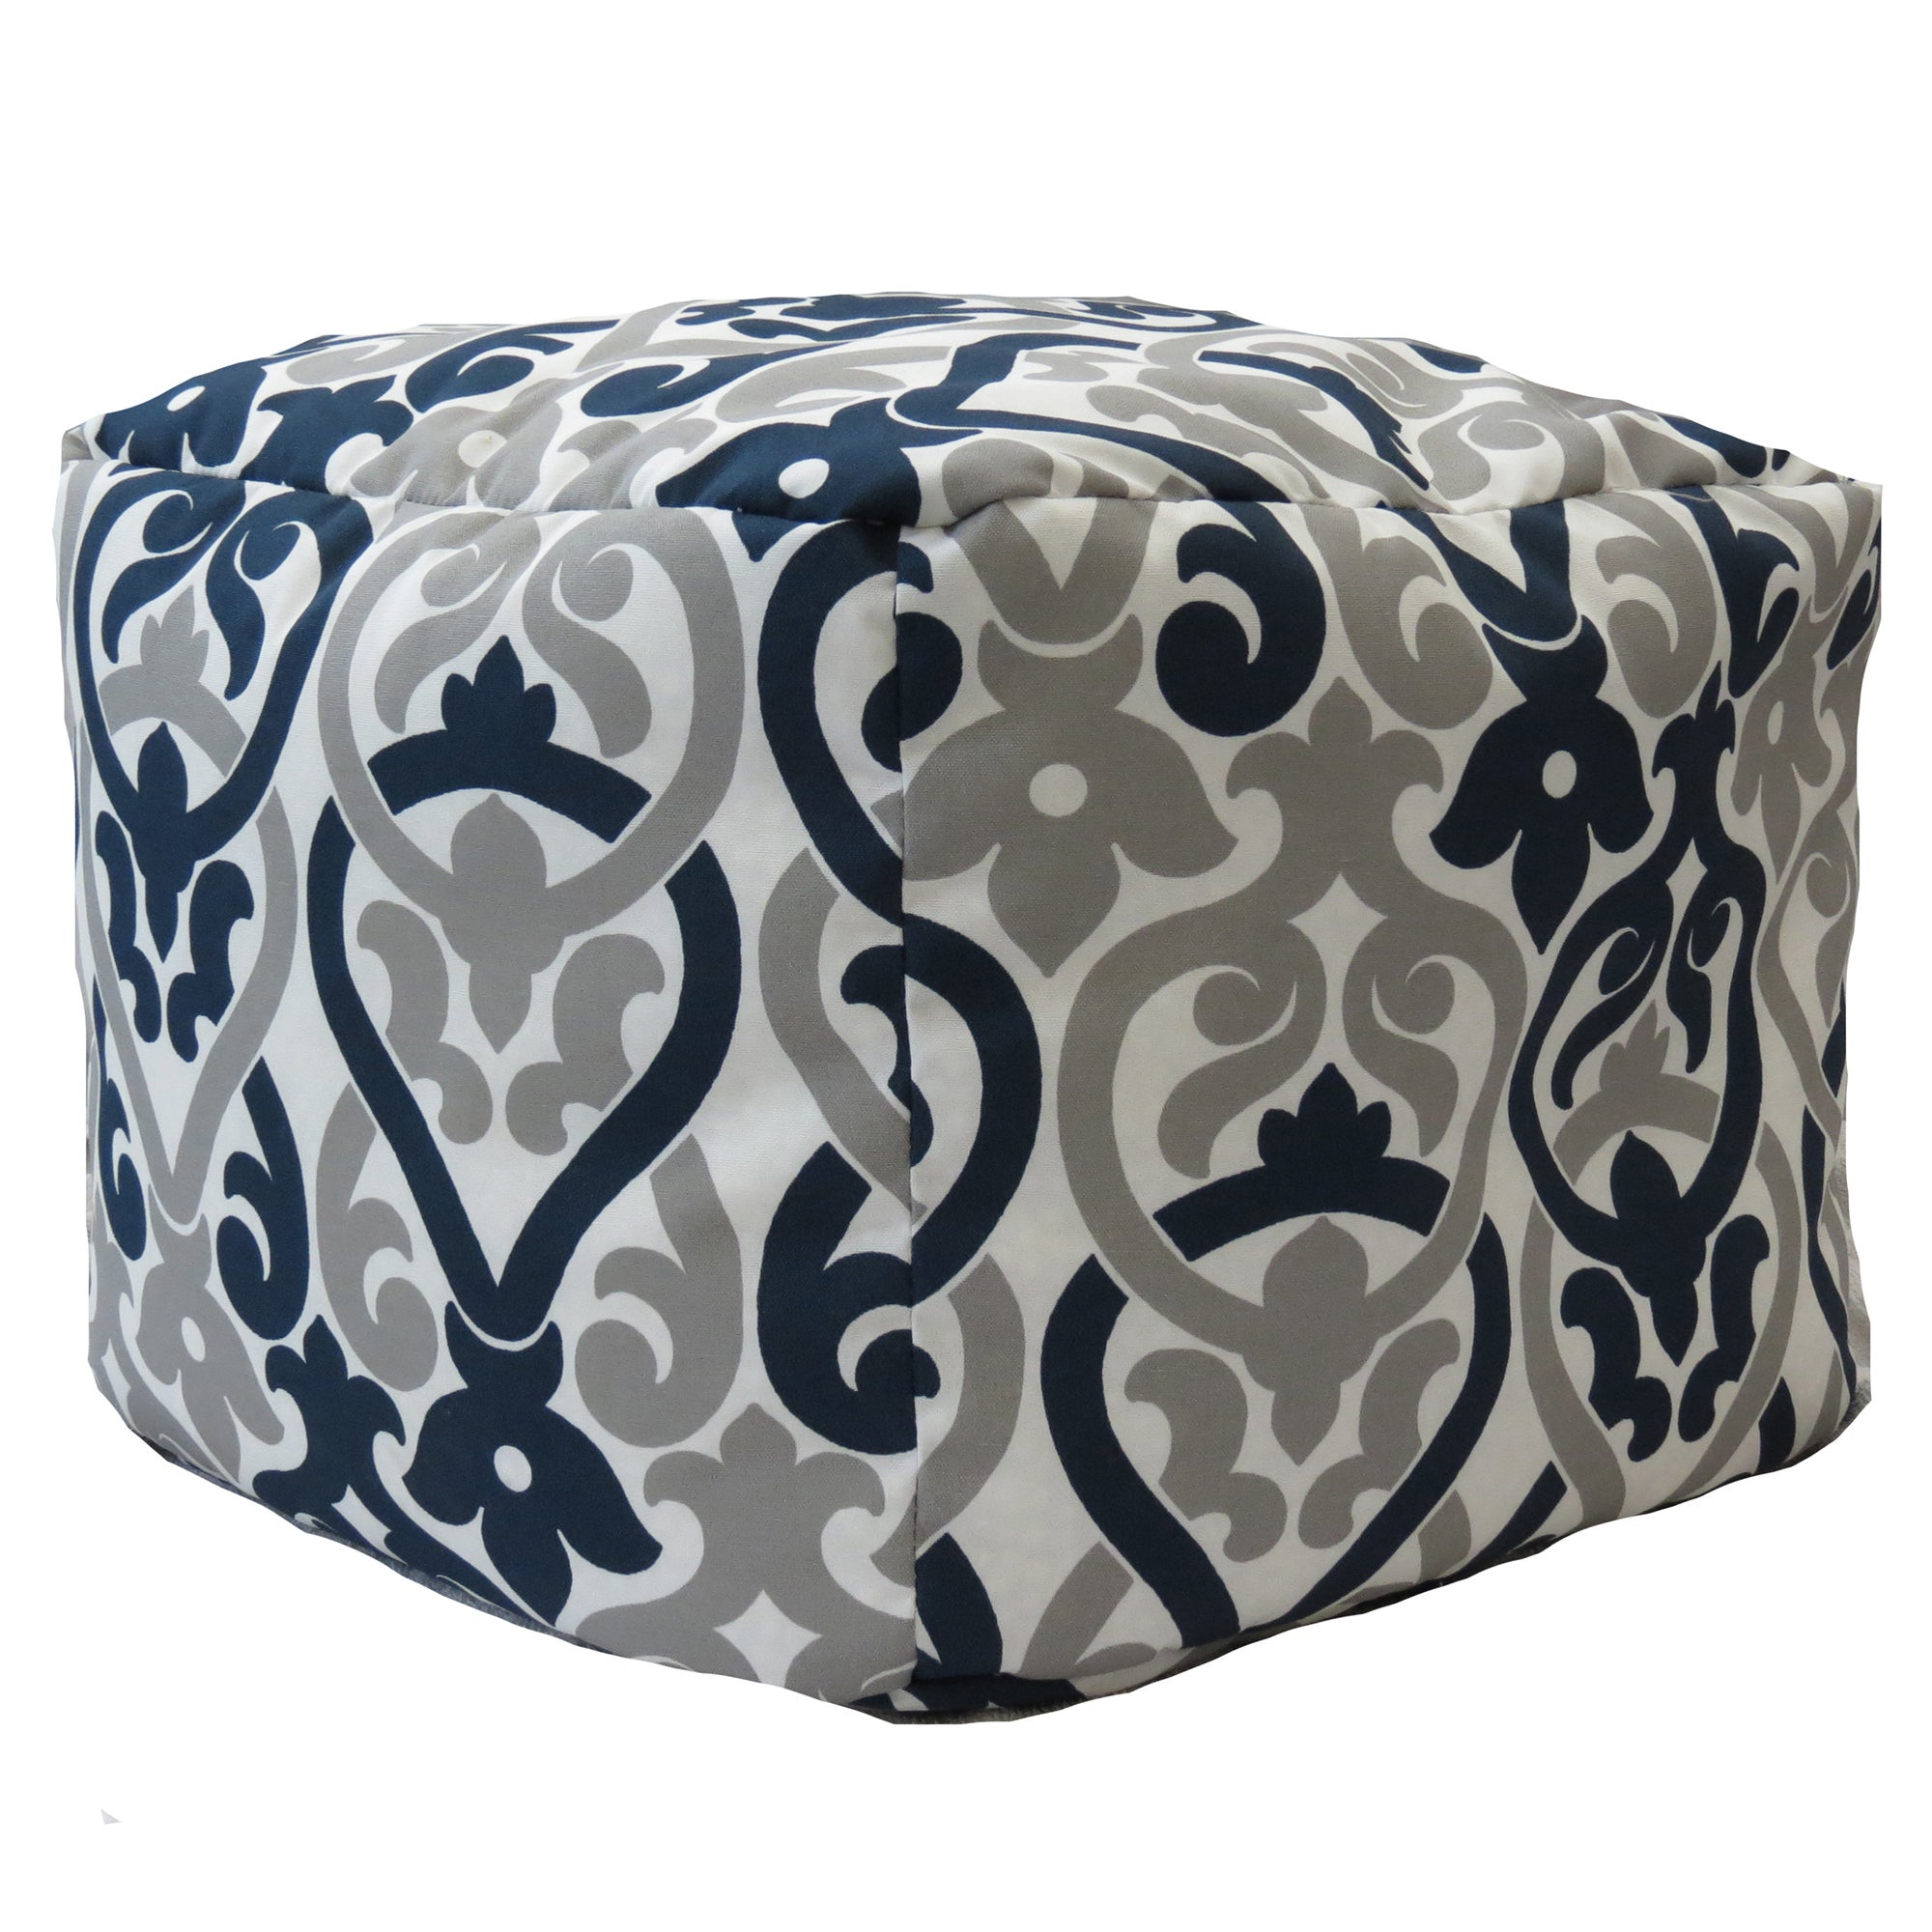 Premiere Home Indoor Outdoor Alex Oxford Grey 17 Inch Square Pouf Footstool Overstock 10078015